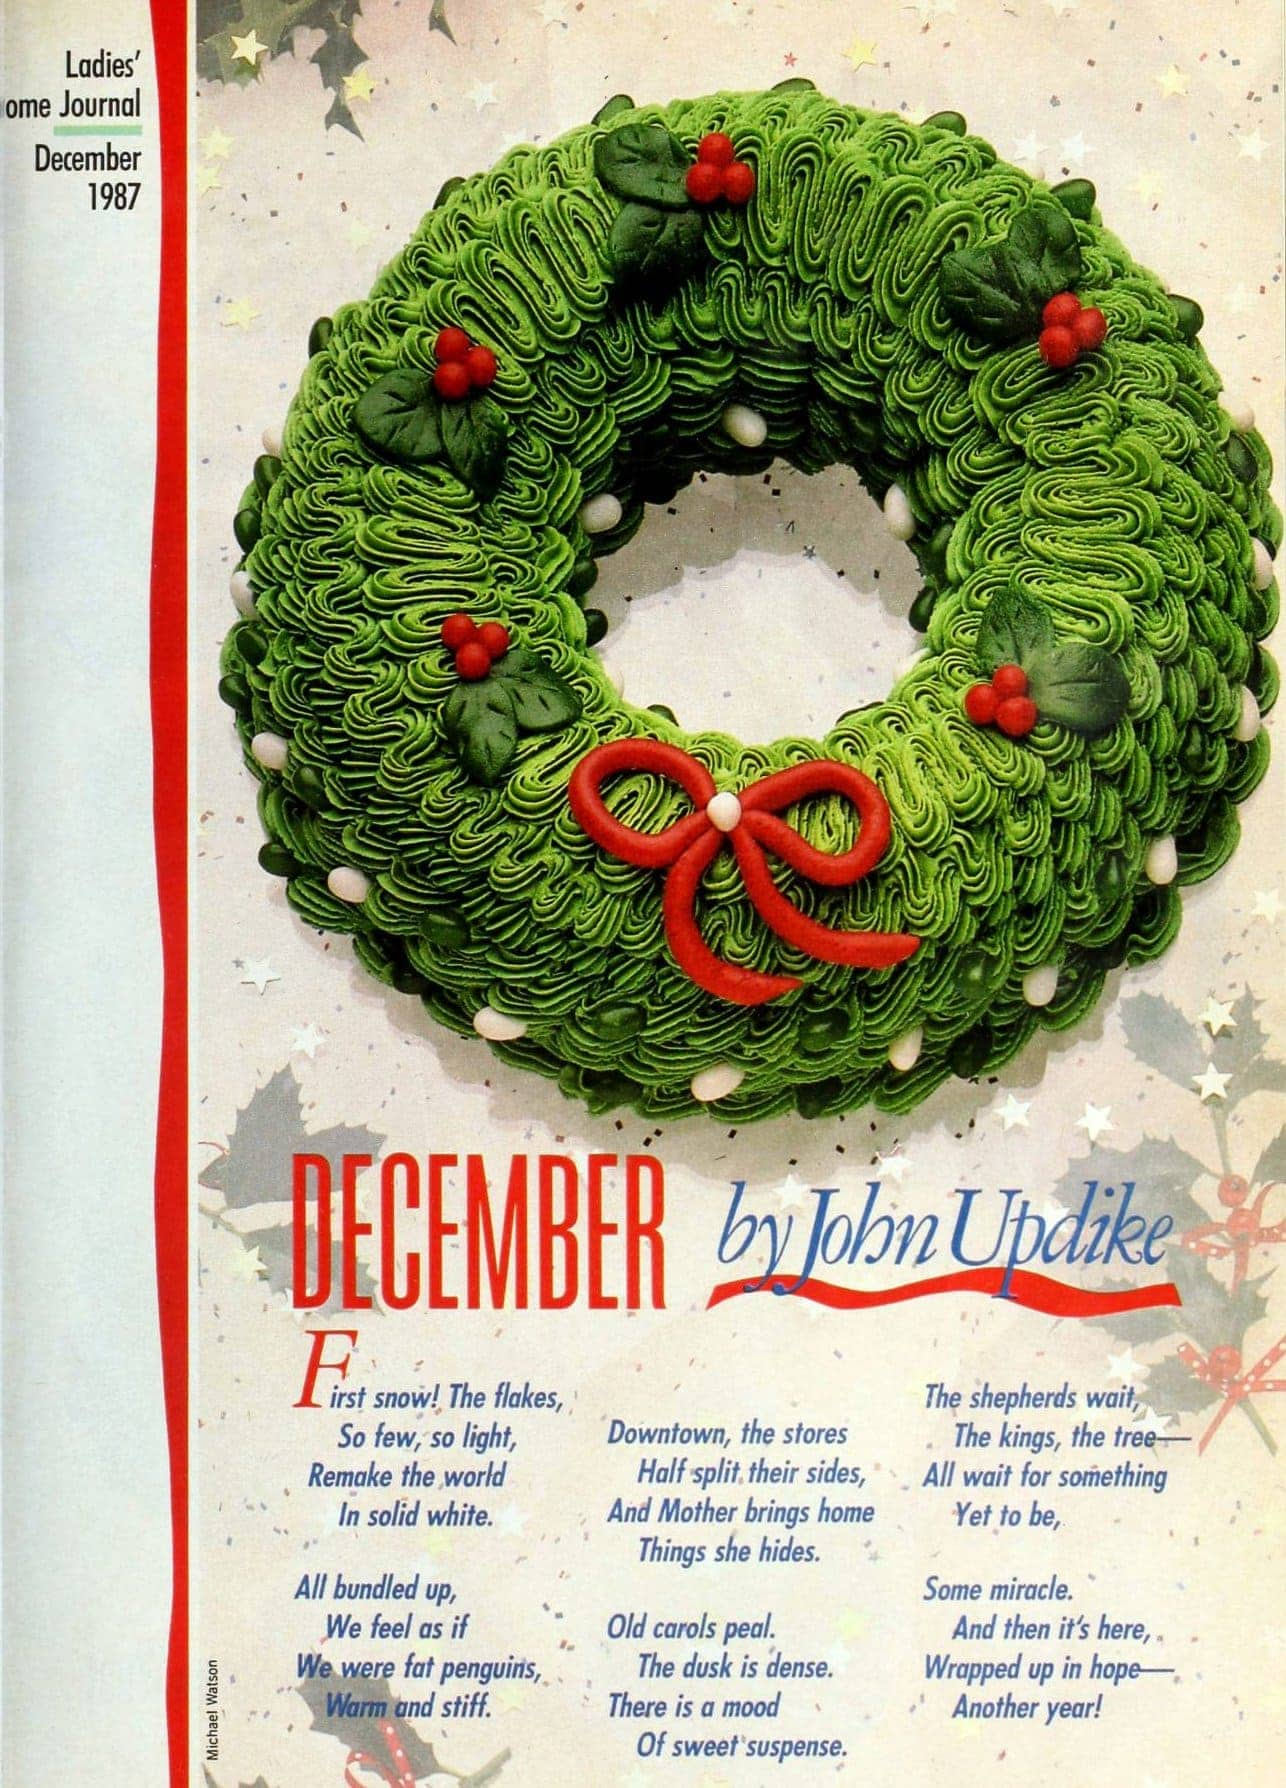 Cool and creative retro decorated Christmas cakes from the 1980s - Wreath